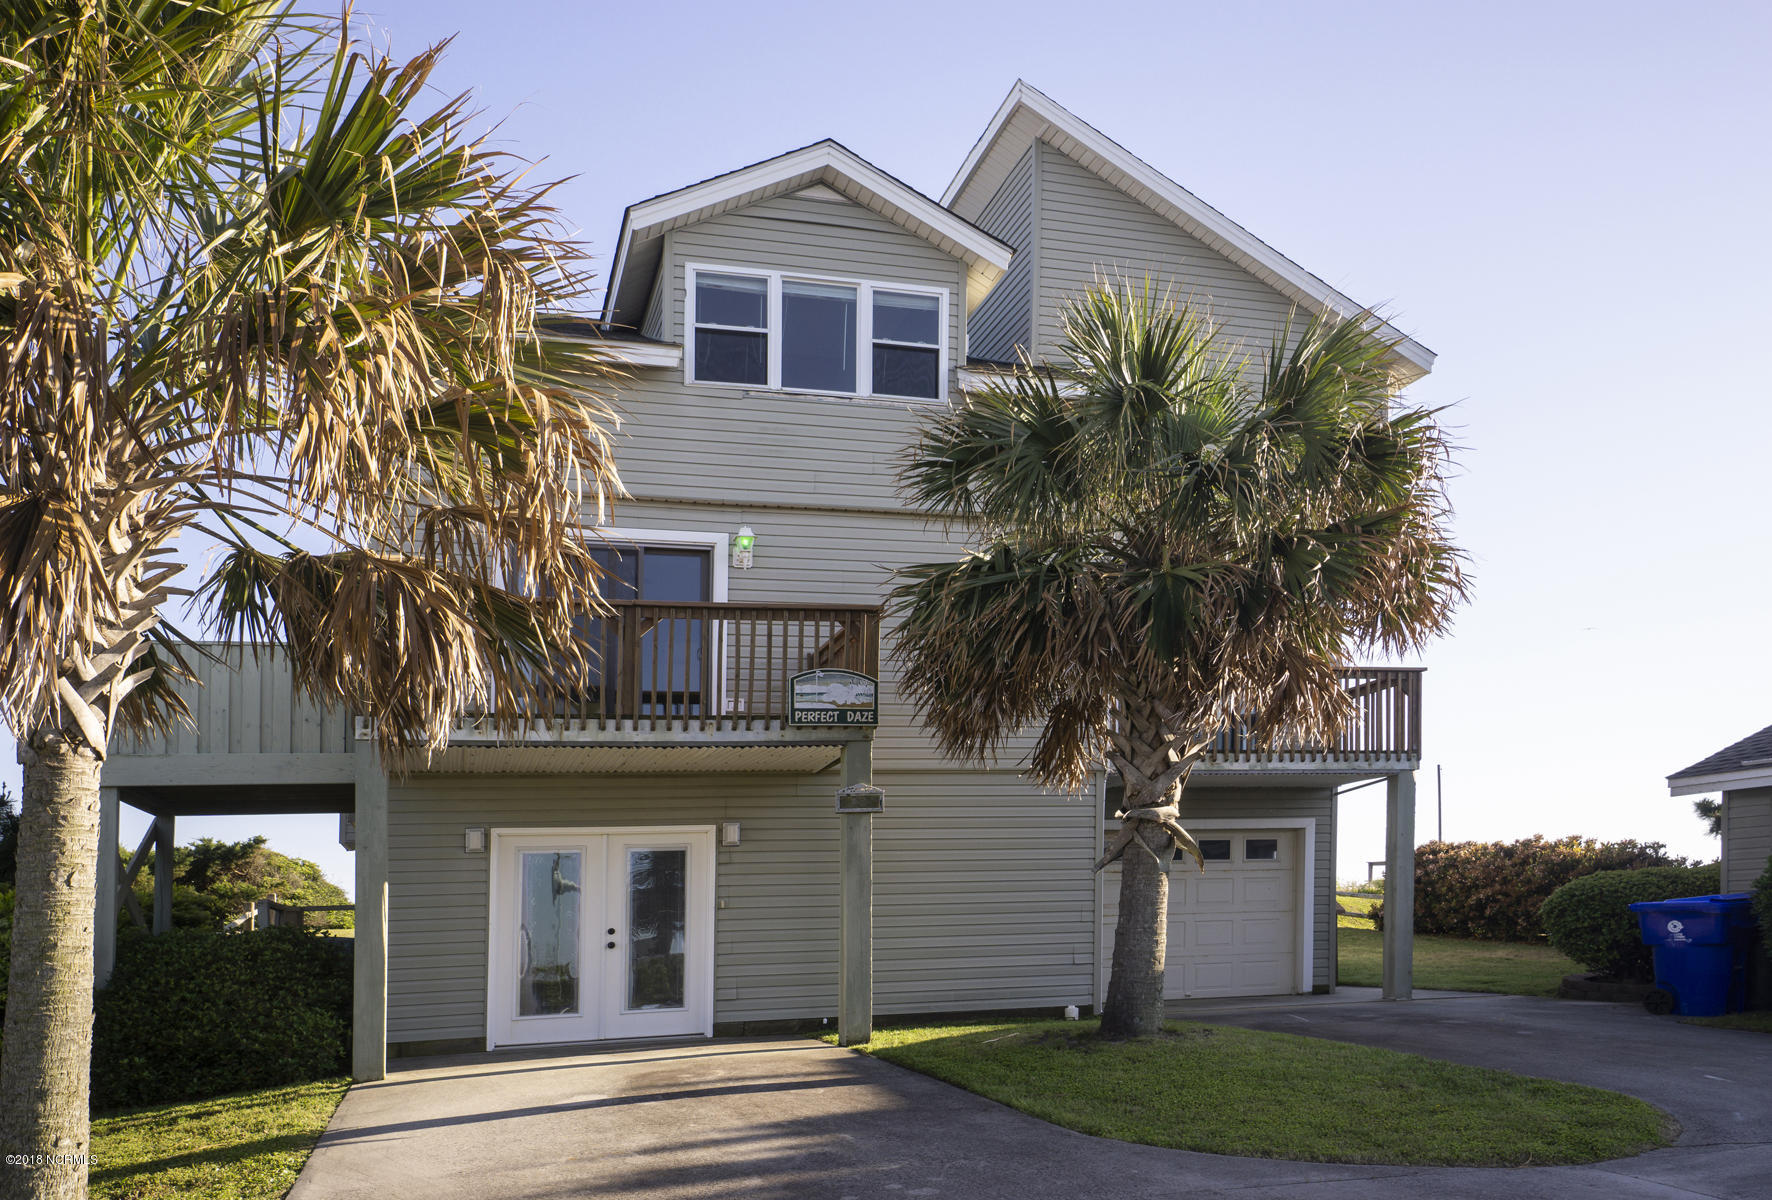 215 Caswell Beach Road Caswell Beach, NC 28465